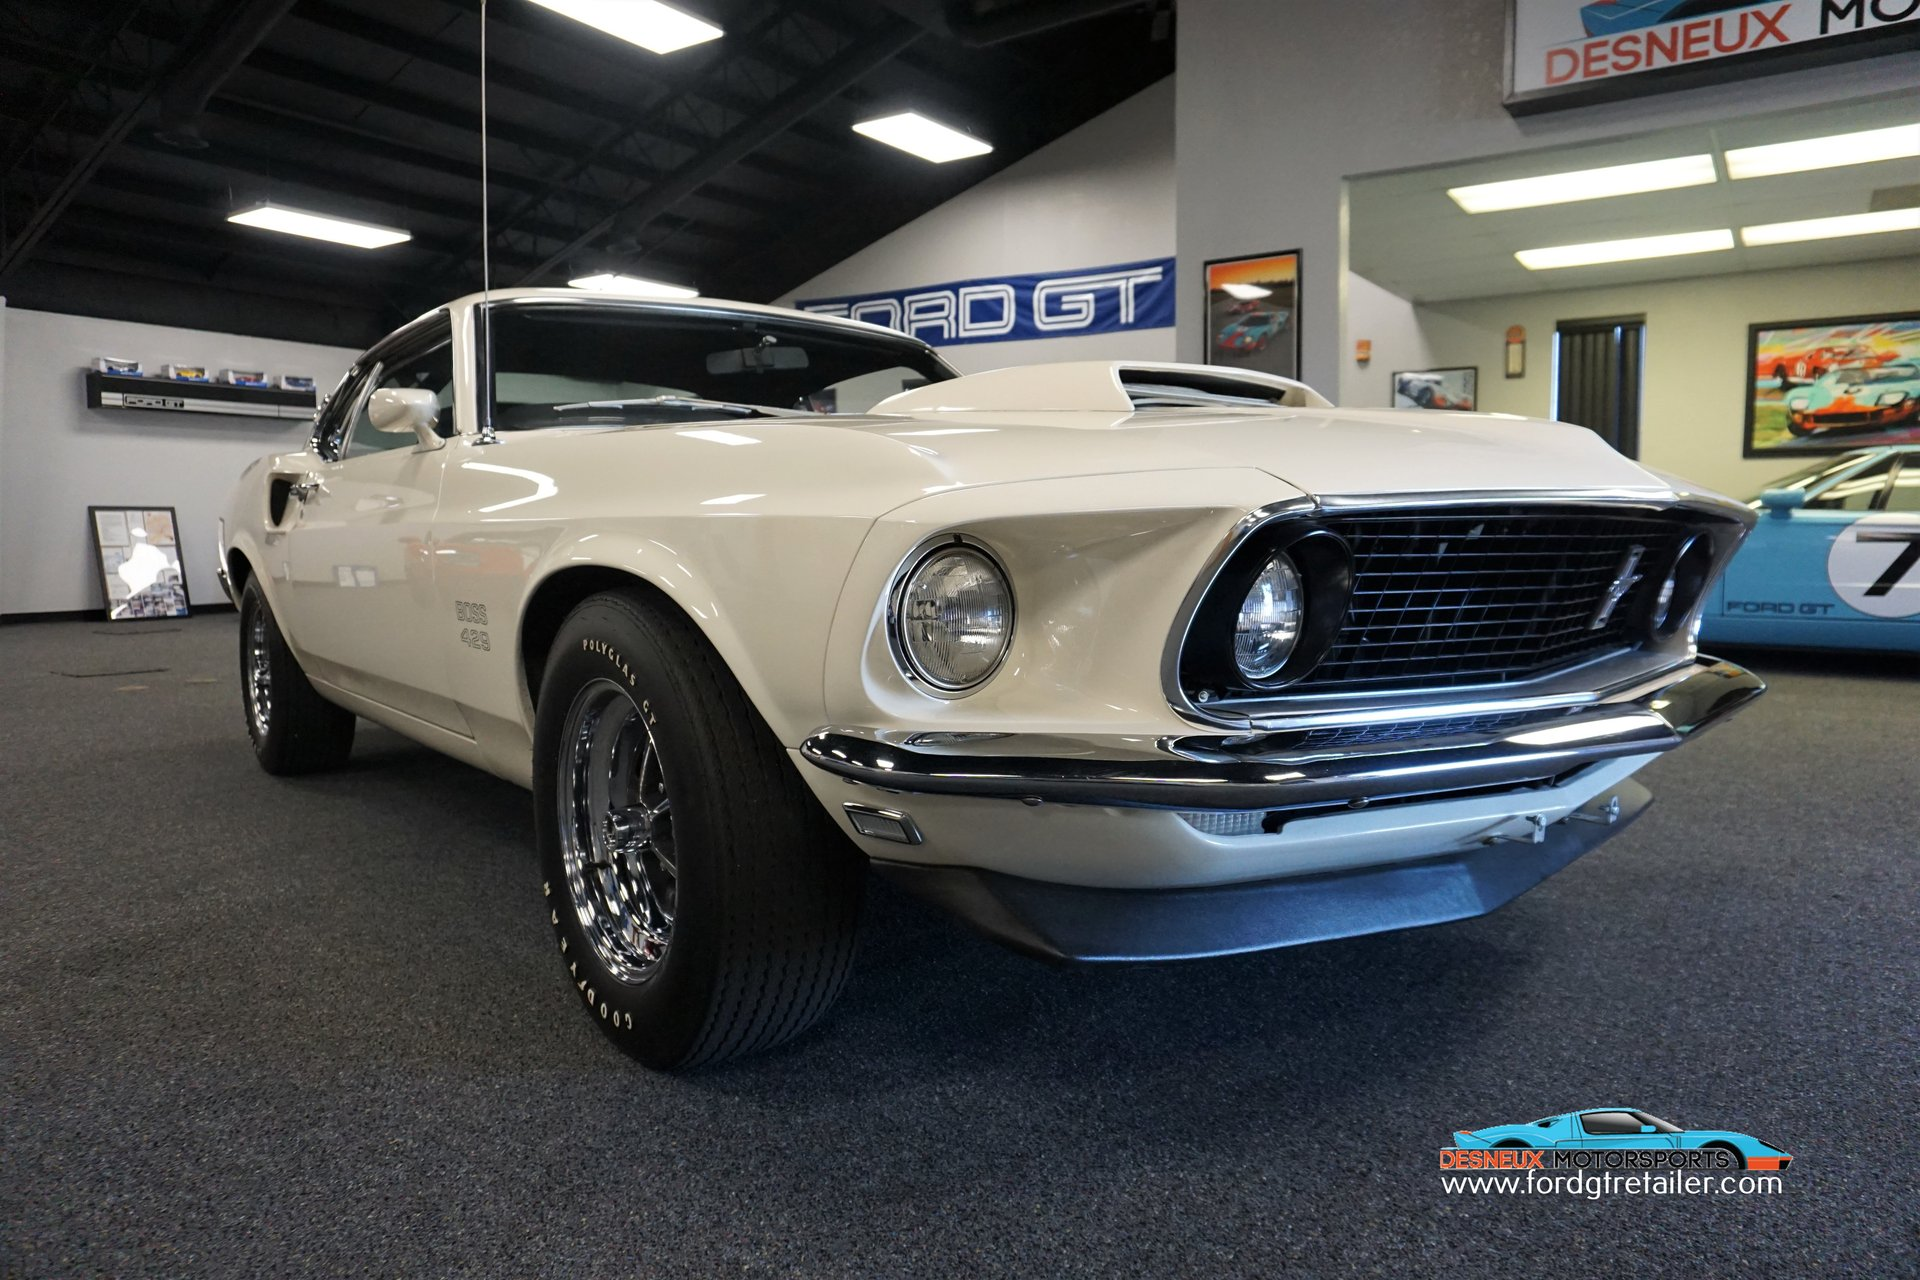 1969 ford mustang boss 429 for sale 110601 mcg